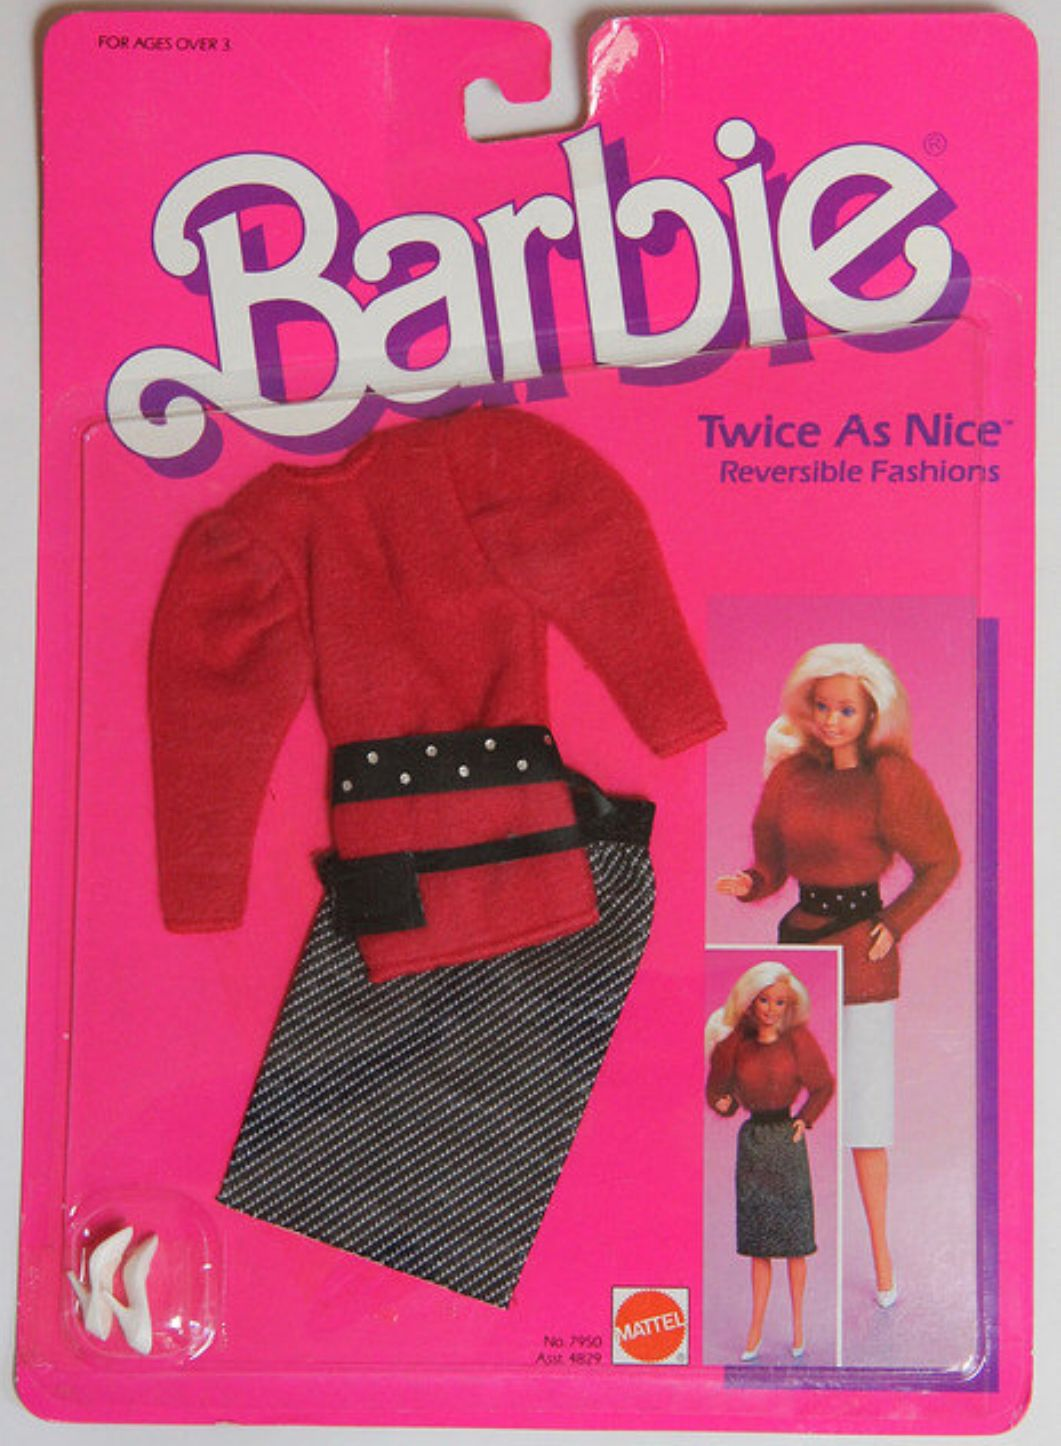 Pin By Jasmin Graf On Barbie Of The 1970 S 80 S And 90 S Barbie Clothes Barbie Vintage Barbie Clothes